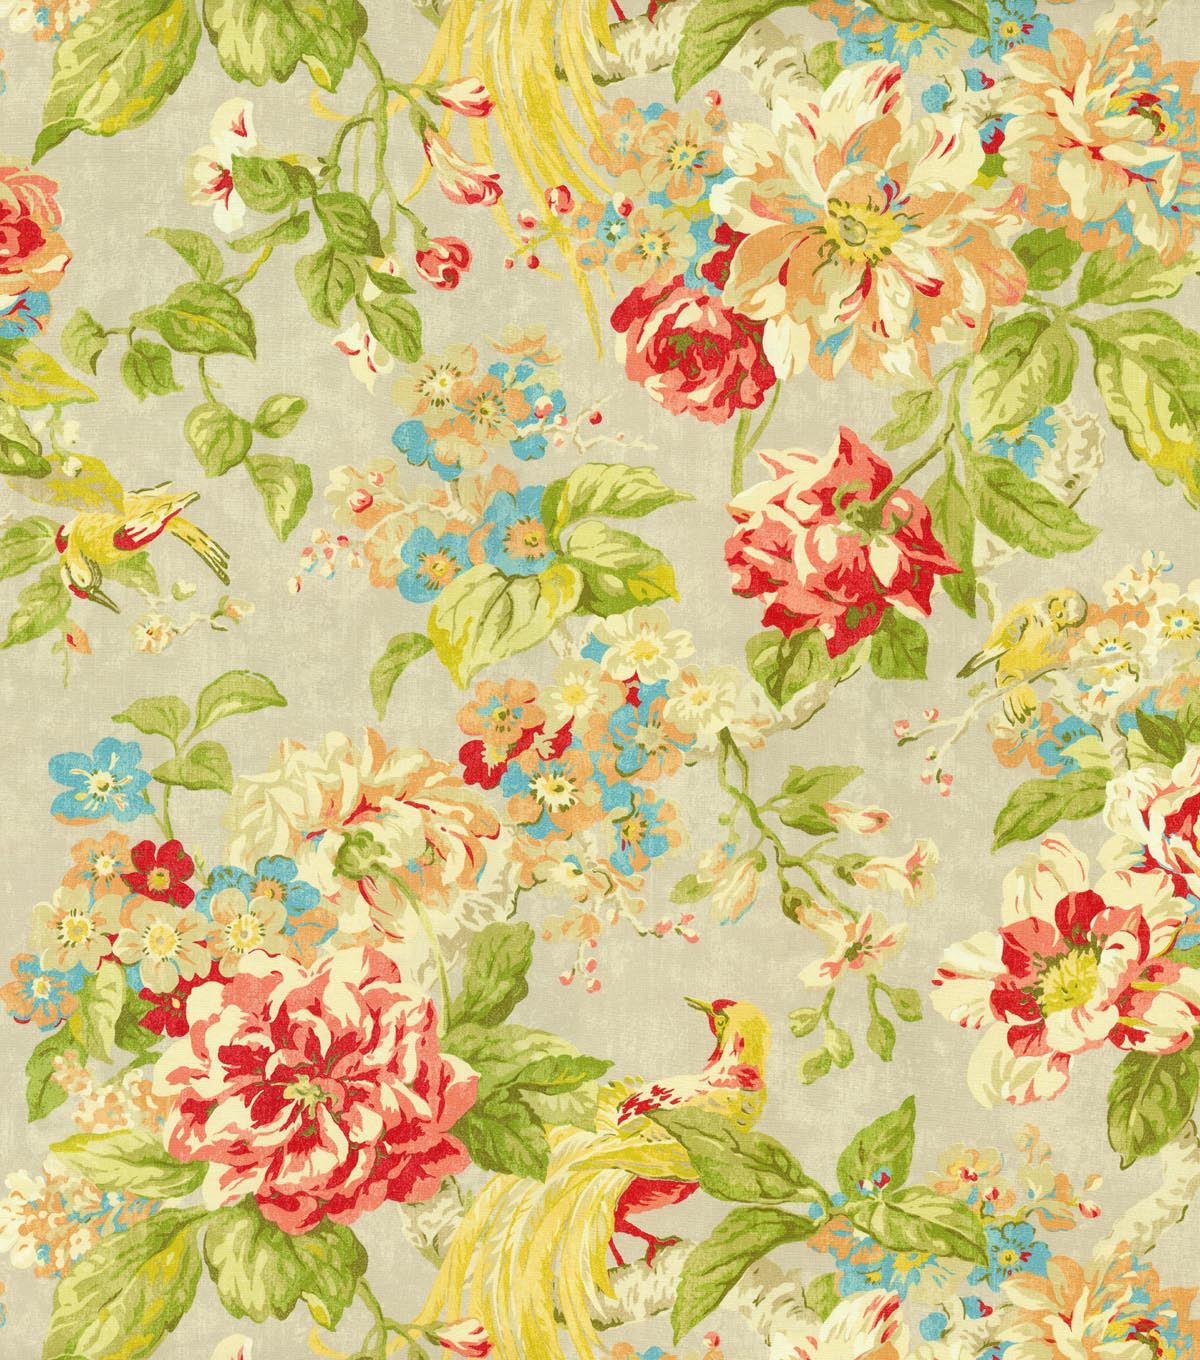 Upholstery Fabric Waverly Floral Engagement Poppy Joann